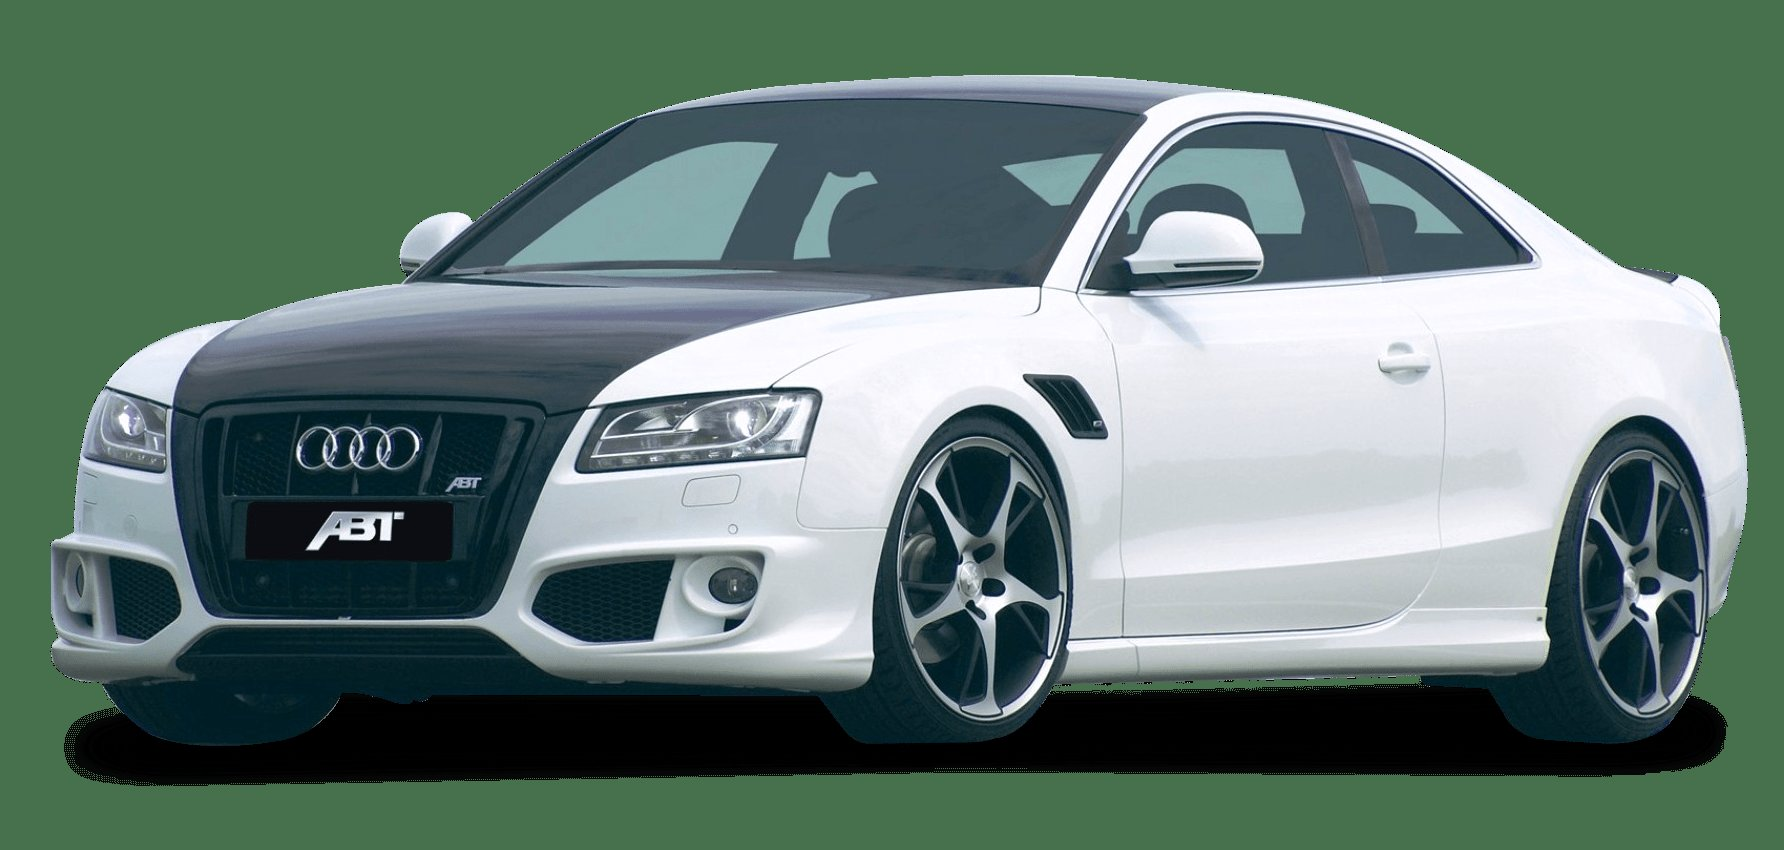 Latest Download Audi Car Png Image Illinois Liver Free Download